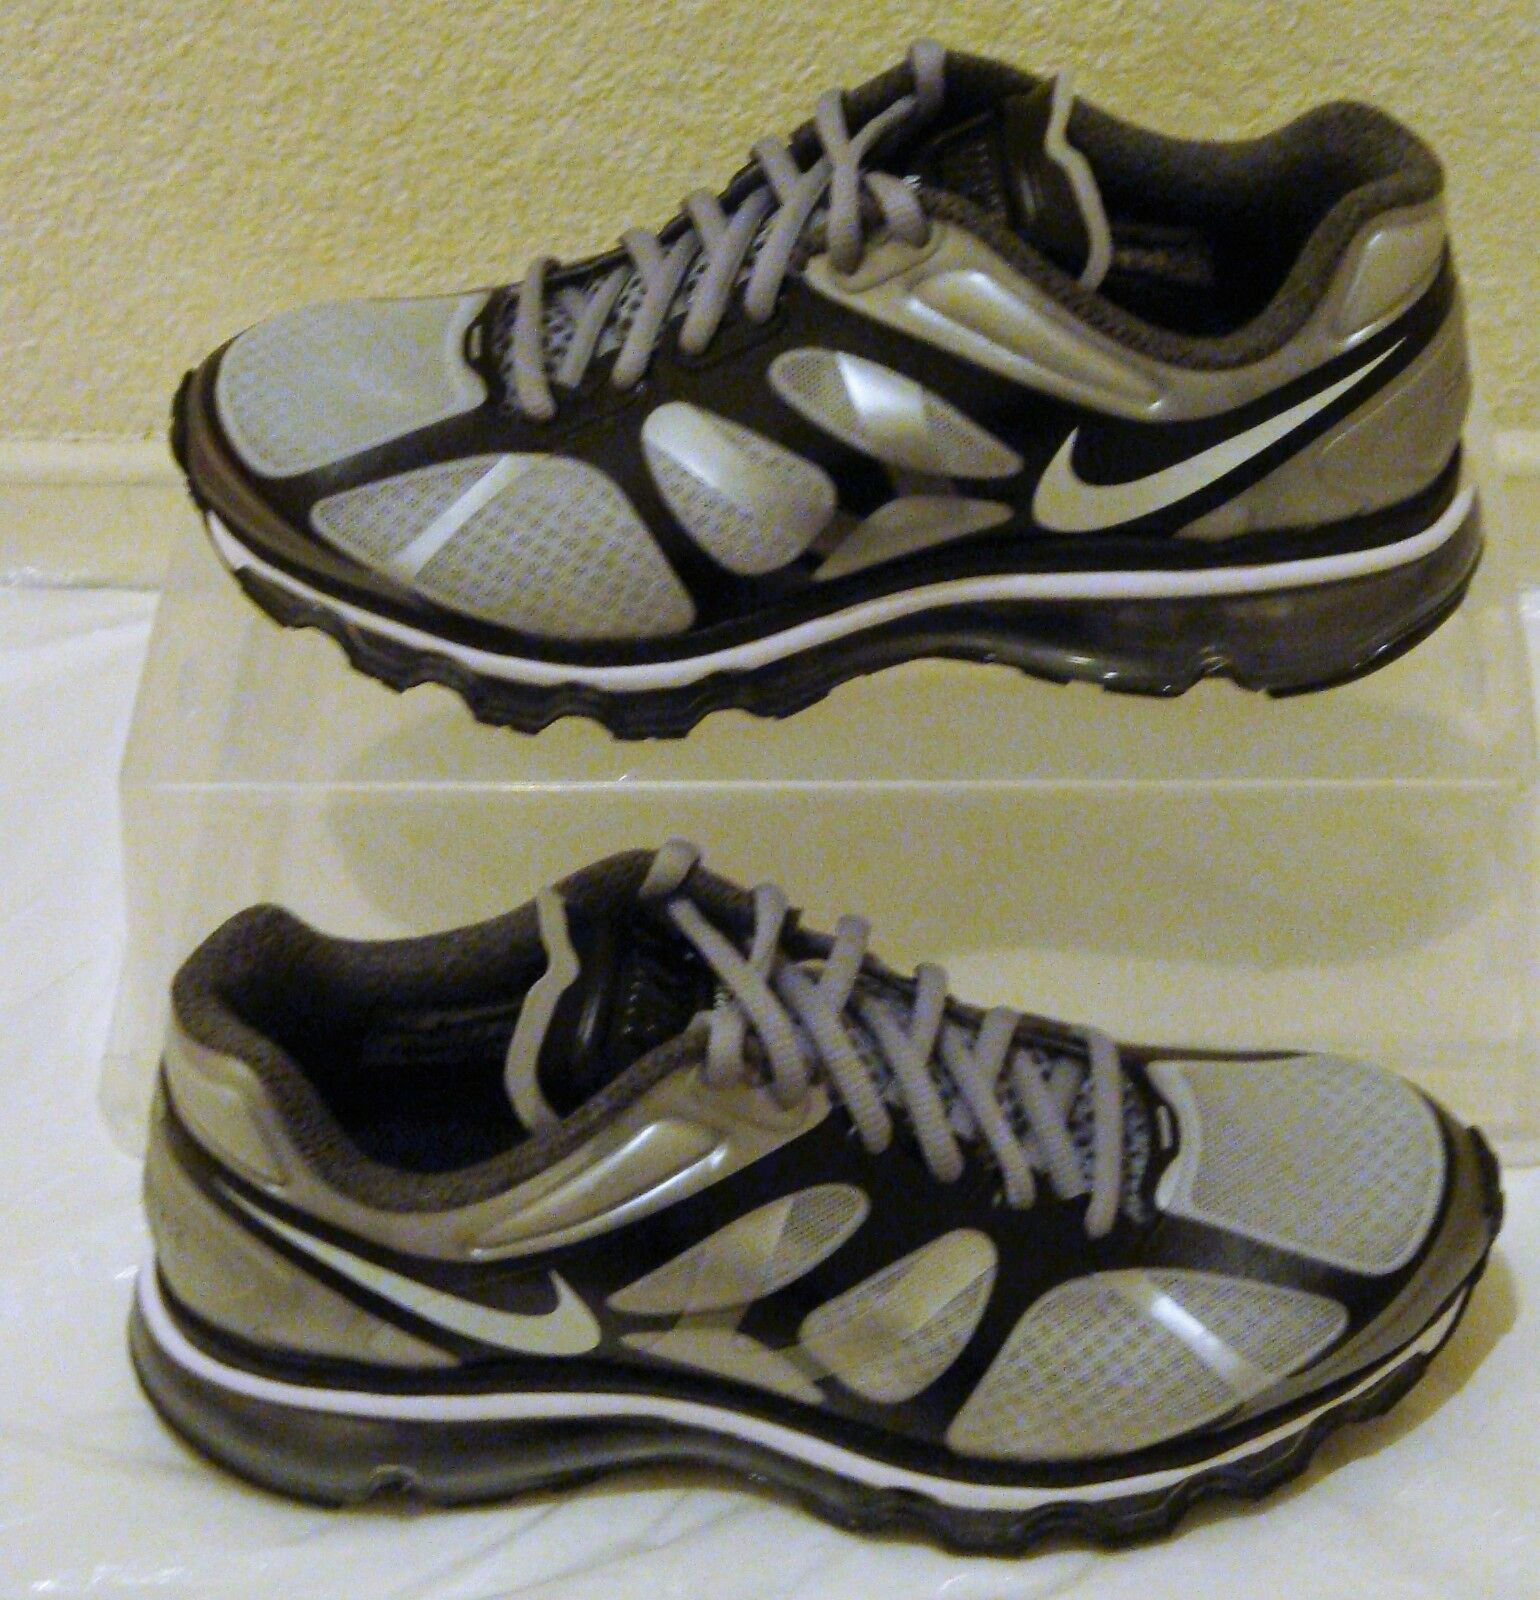 New Nike Air Max 2012 Grey Black Mens US Size 7.5 CM 25.5